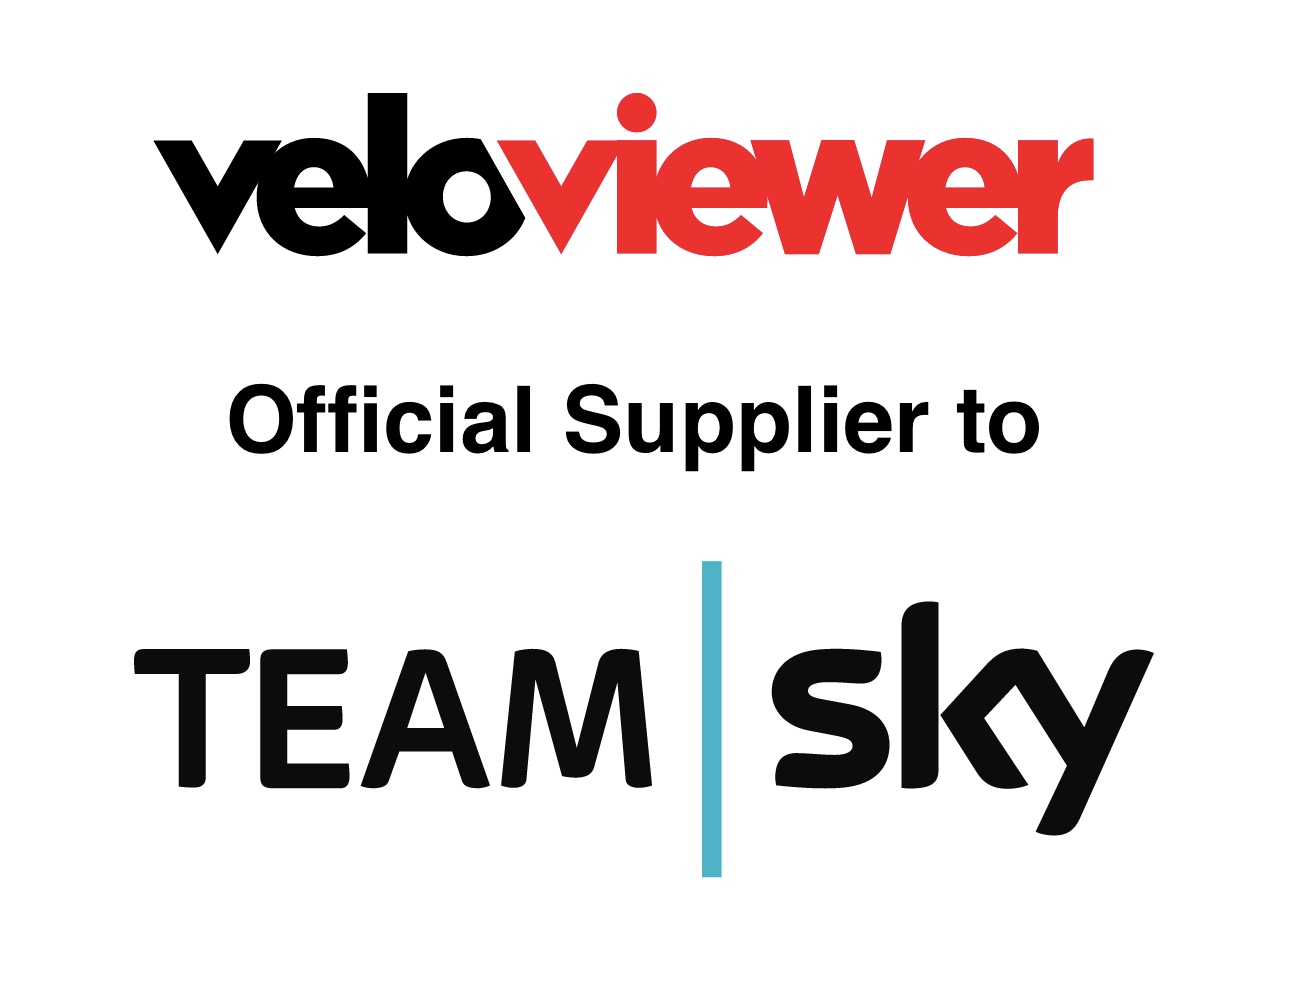 VeloViewer - Official Supplier to Team Sky